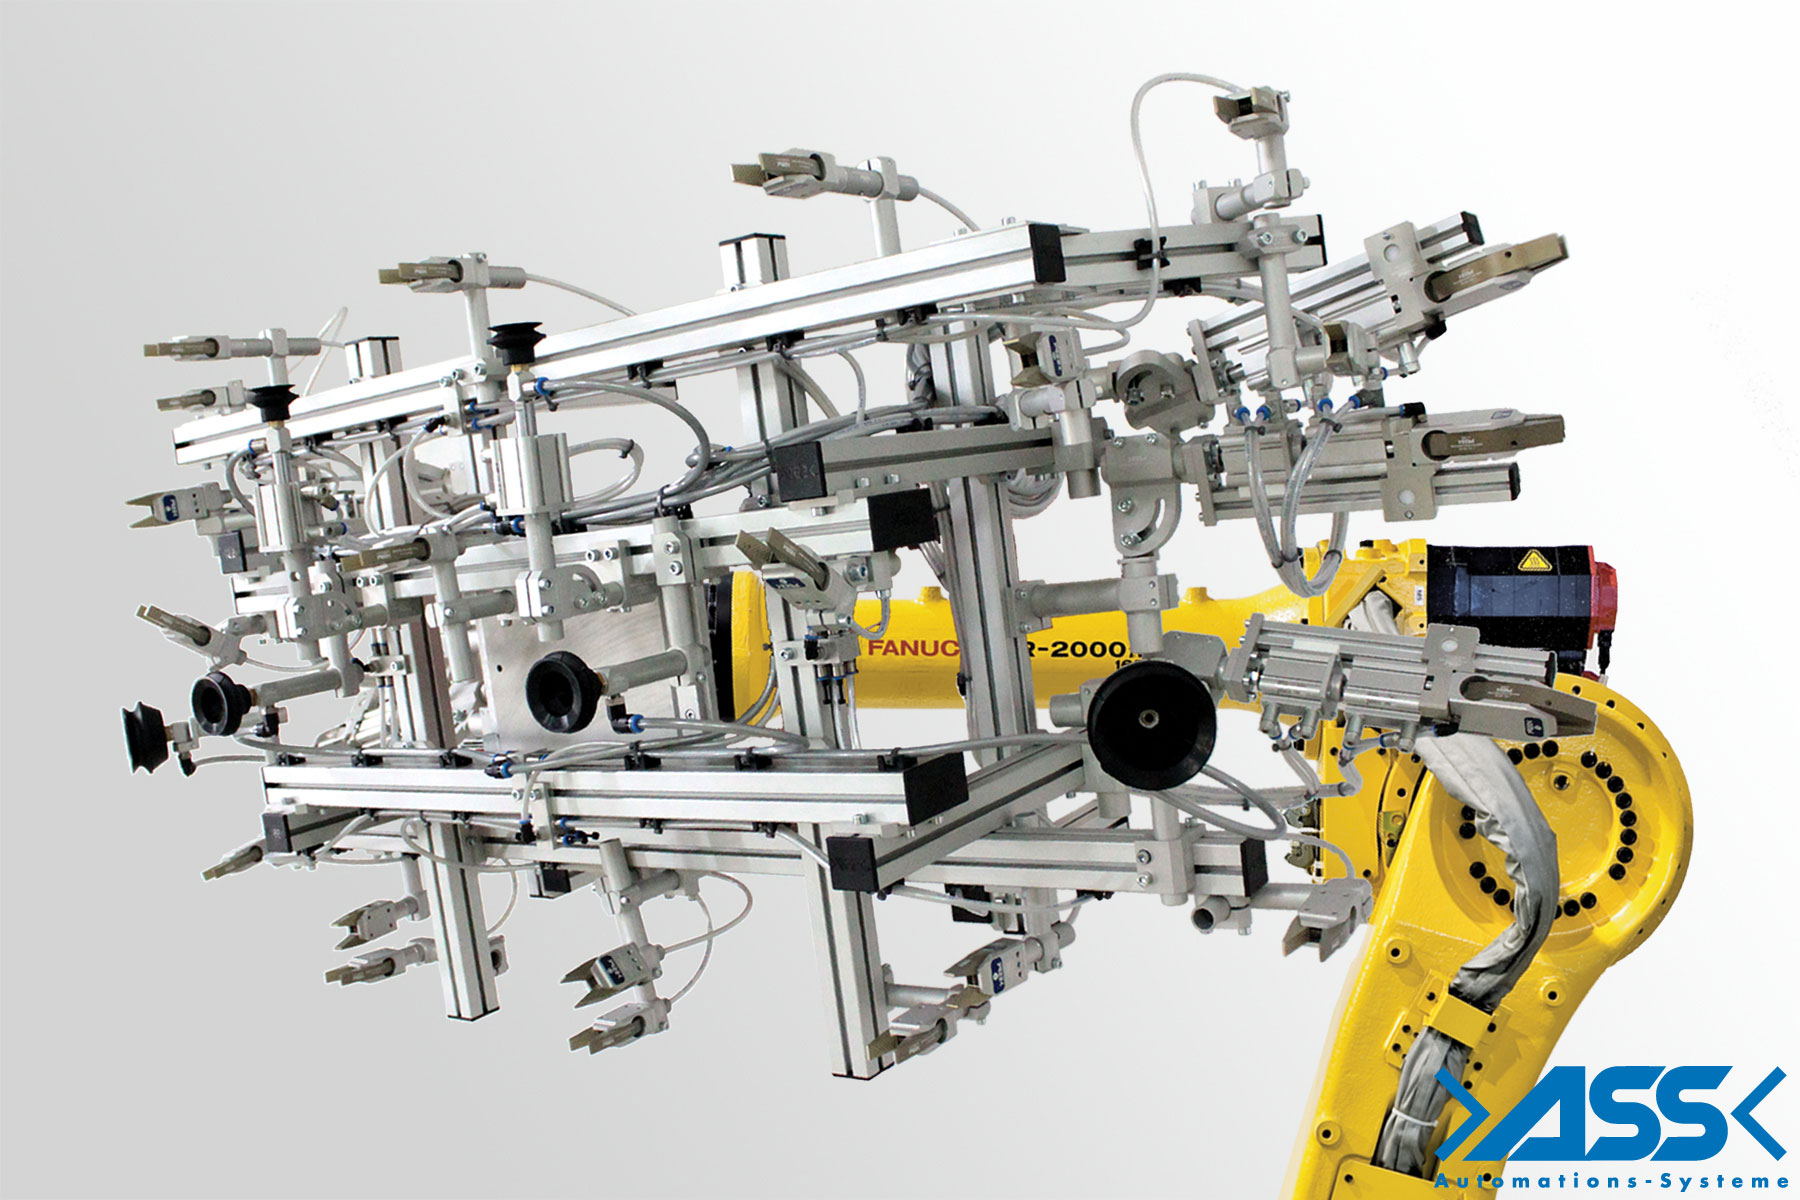 ASS Automation Systems